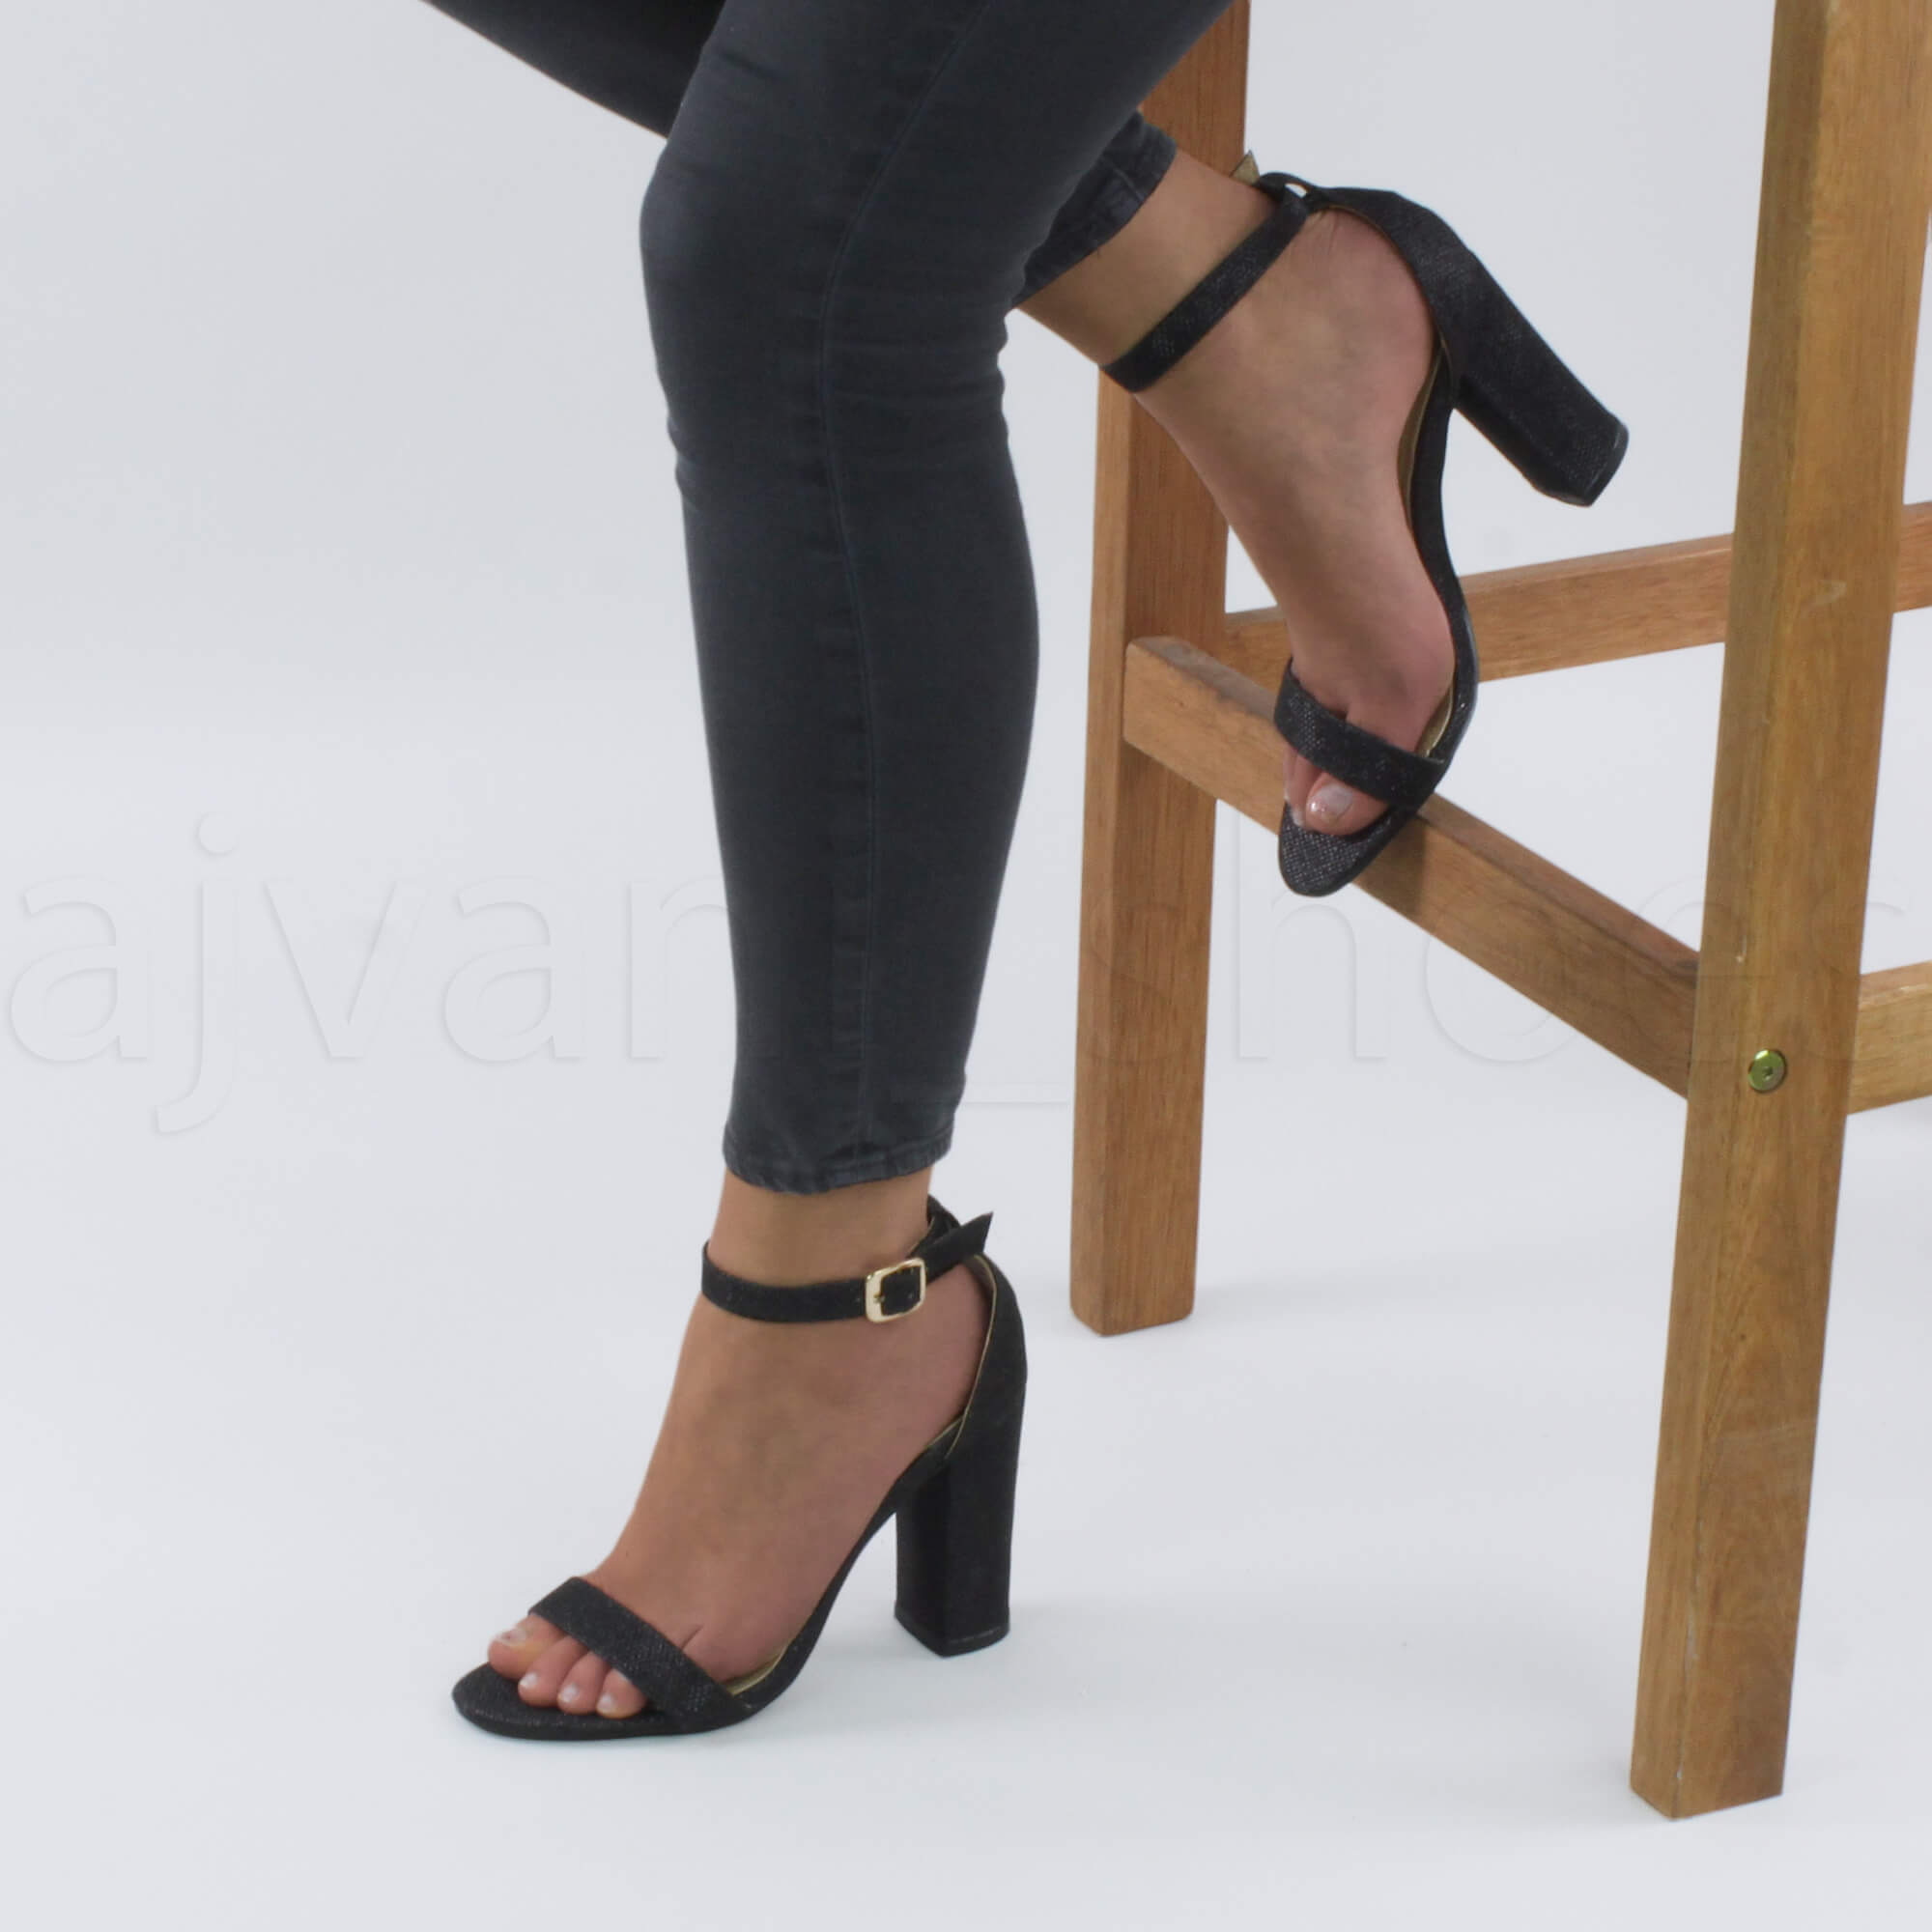 WOMENS-LADIES-BLOCK-HIGH-HEEL-ANKLE-STRAP-PEEP-TOE-STRAPPY-SANDALS-SHOES-SIZE thumbnail 30